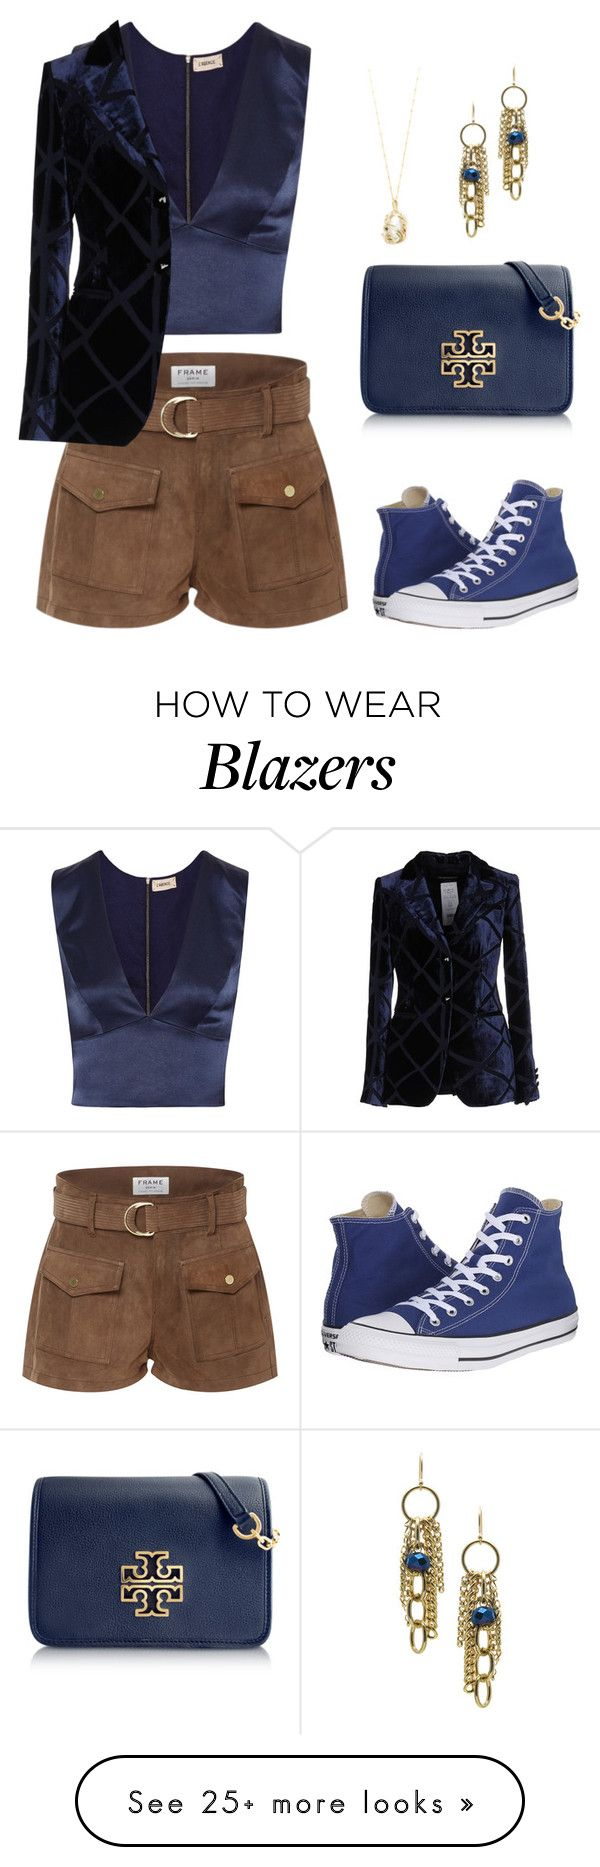 """WarmWeatherWear"" by lynne-farrell on Polyvore featuring Frame Denim, L'Agence, Janna Conner Designs, Emporio Armani, Tory Burch, Converse and Loquet"